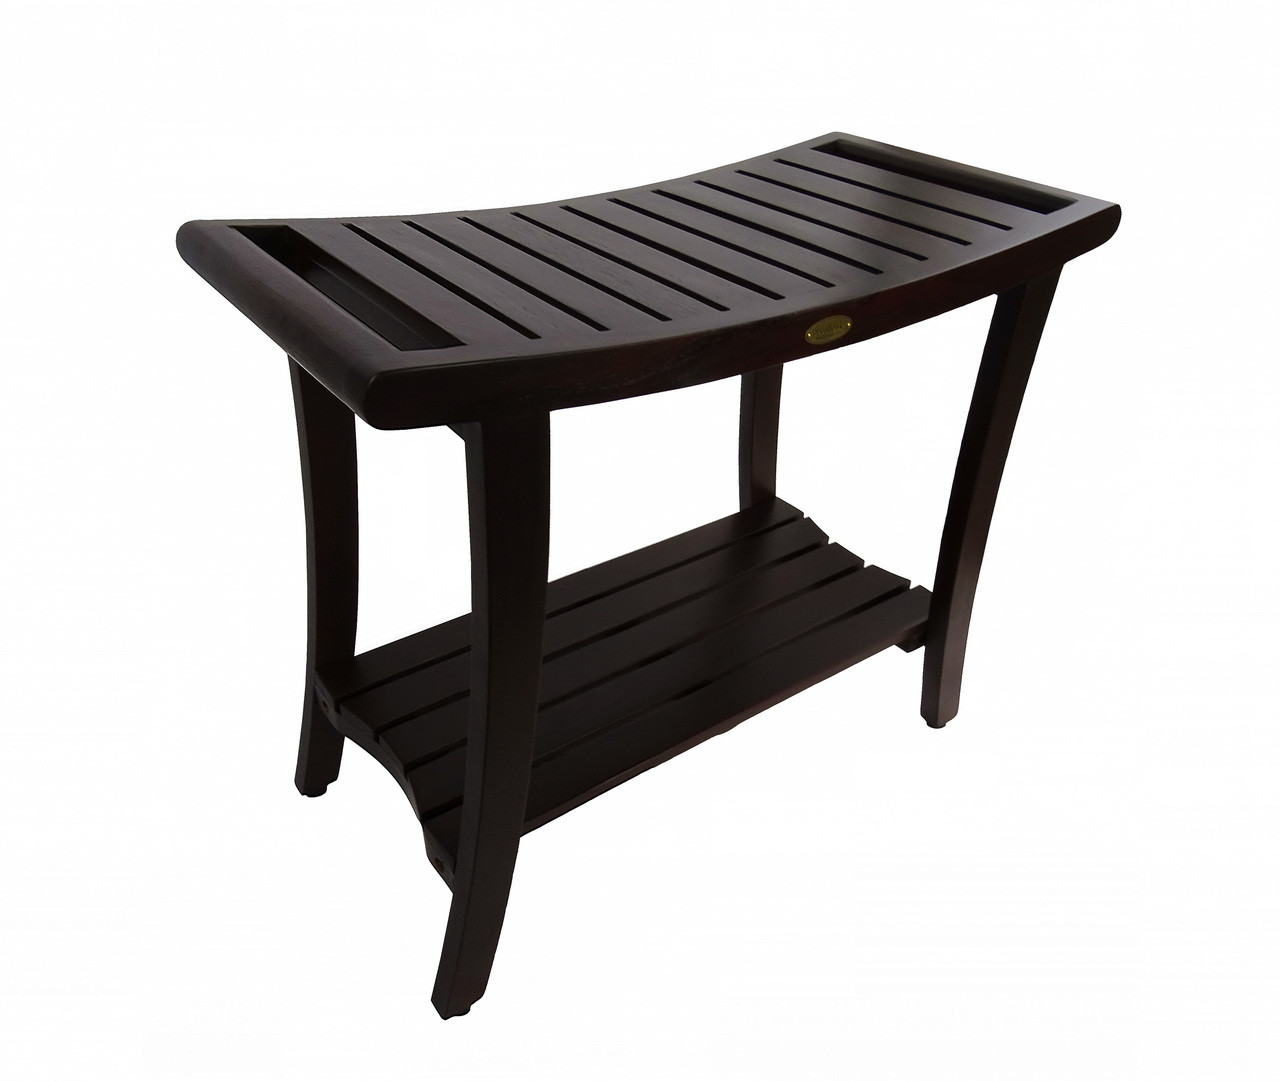 """DecoTeak Harmony 30"""" Teak Wood Shower Tall Bench with Shelf and LiftAide Arms in Woodland Brown Finish"""